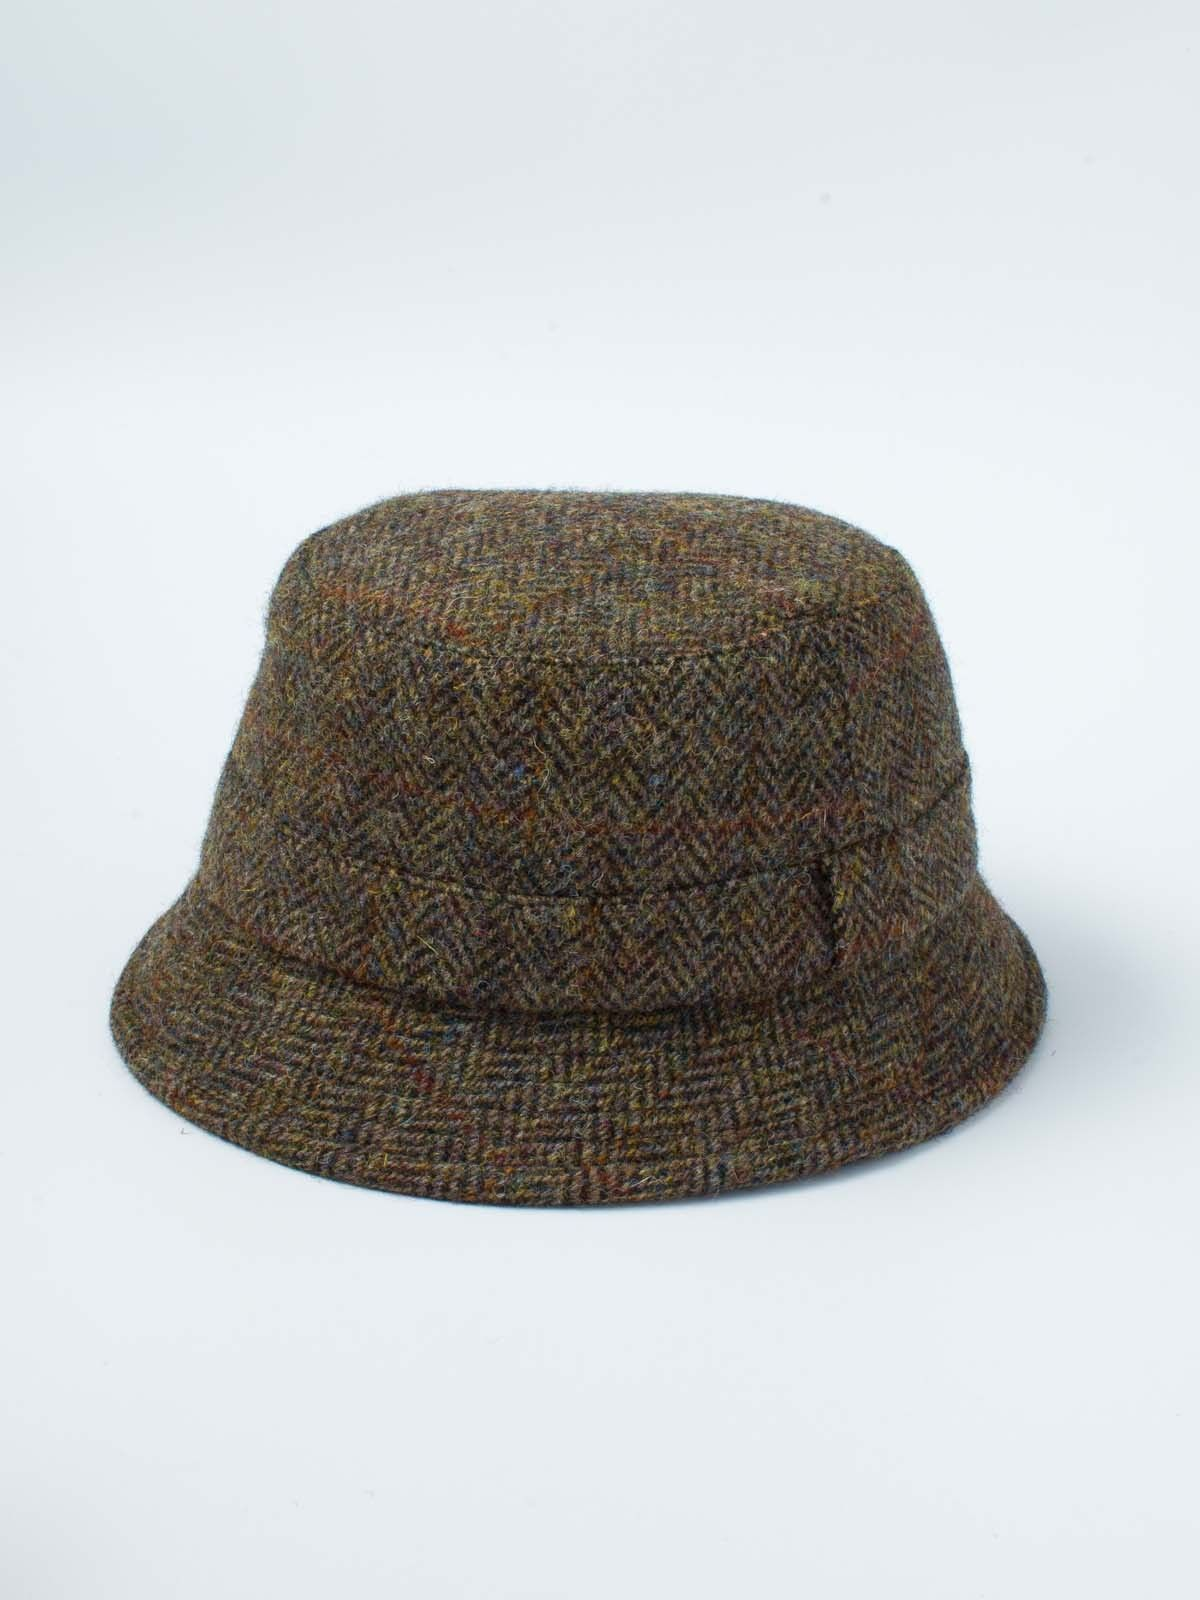 Harris Tweed Roll-Up Hat - Originally designed as a fly fisherman's hat this famous Tweed hat is now quite at home in the town. Made to last, this rugged fabric captures the heather and hues of a Scottish moor. Its luxurious quilt lining will keep you snug and comfortable when the wind gets up. Its canny construction means you can roll it up and pop it in your pocket yet it won't lose its shape. So whether your casting for trout or fishing for compliments this is the hat to bring you luck...